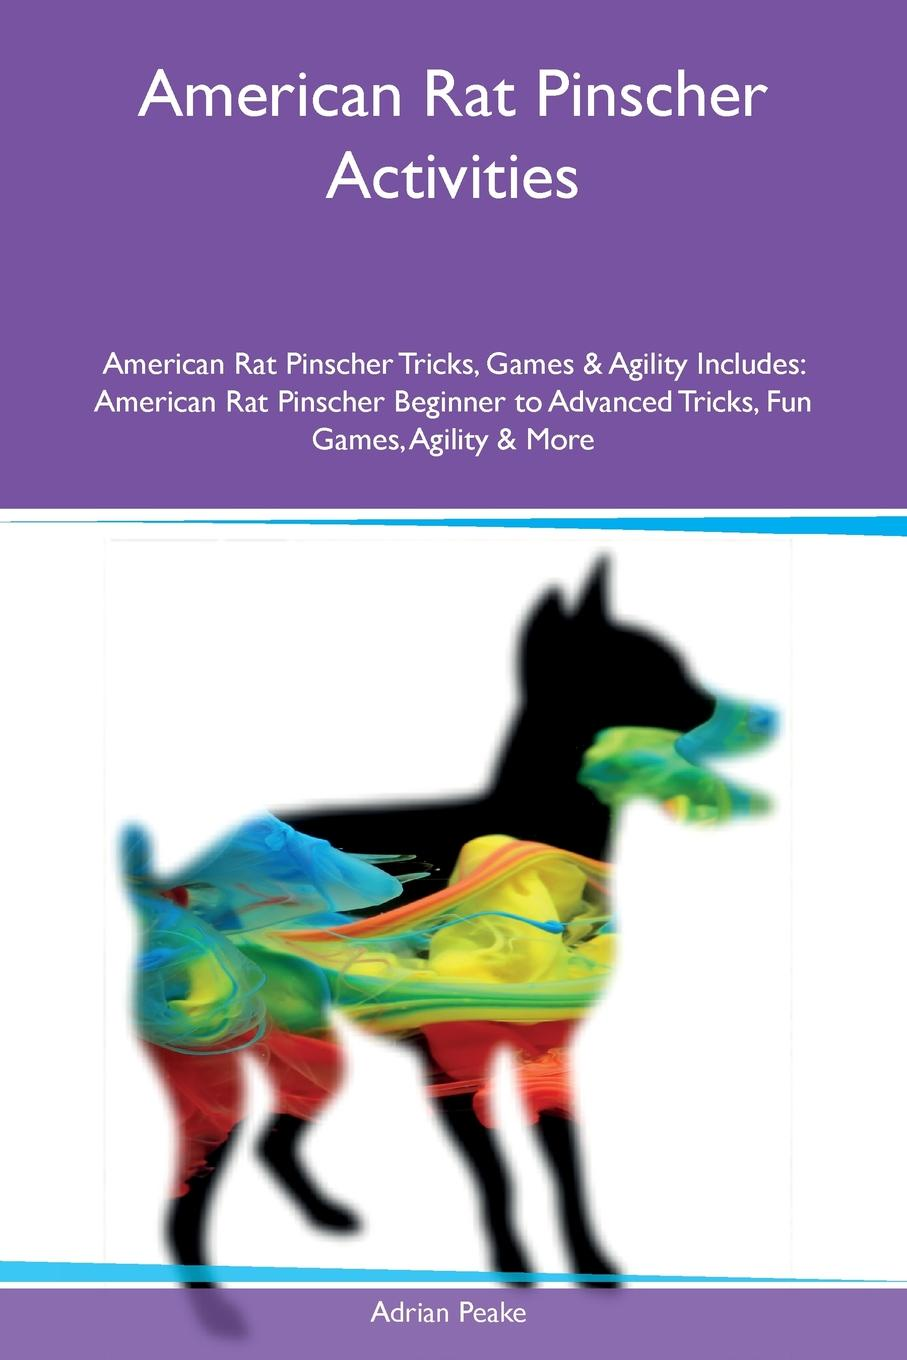 Adrian Peake American Rat Pinscher Activities American Rat Pinscher Tricks, Games & Agility Includes. American Rat Pinscher Beginner to Advanced Tricks, Fun Games, Agility & More the rat brain in stereotaxic coordinates